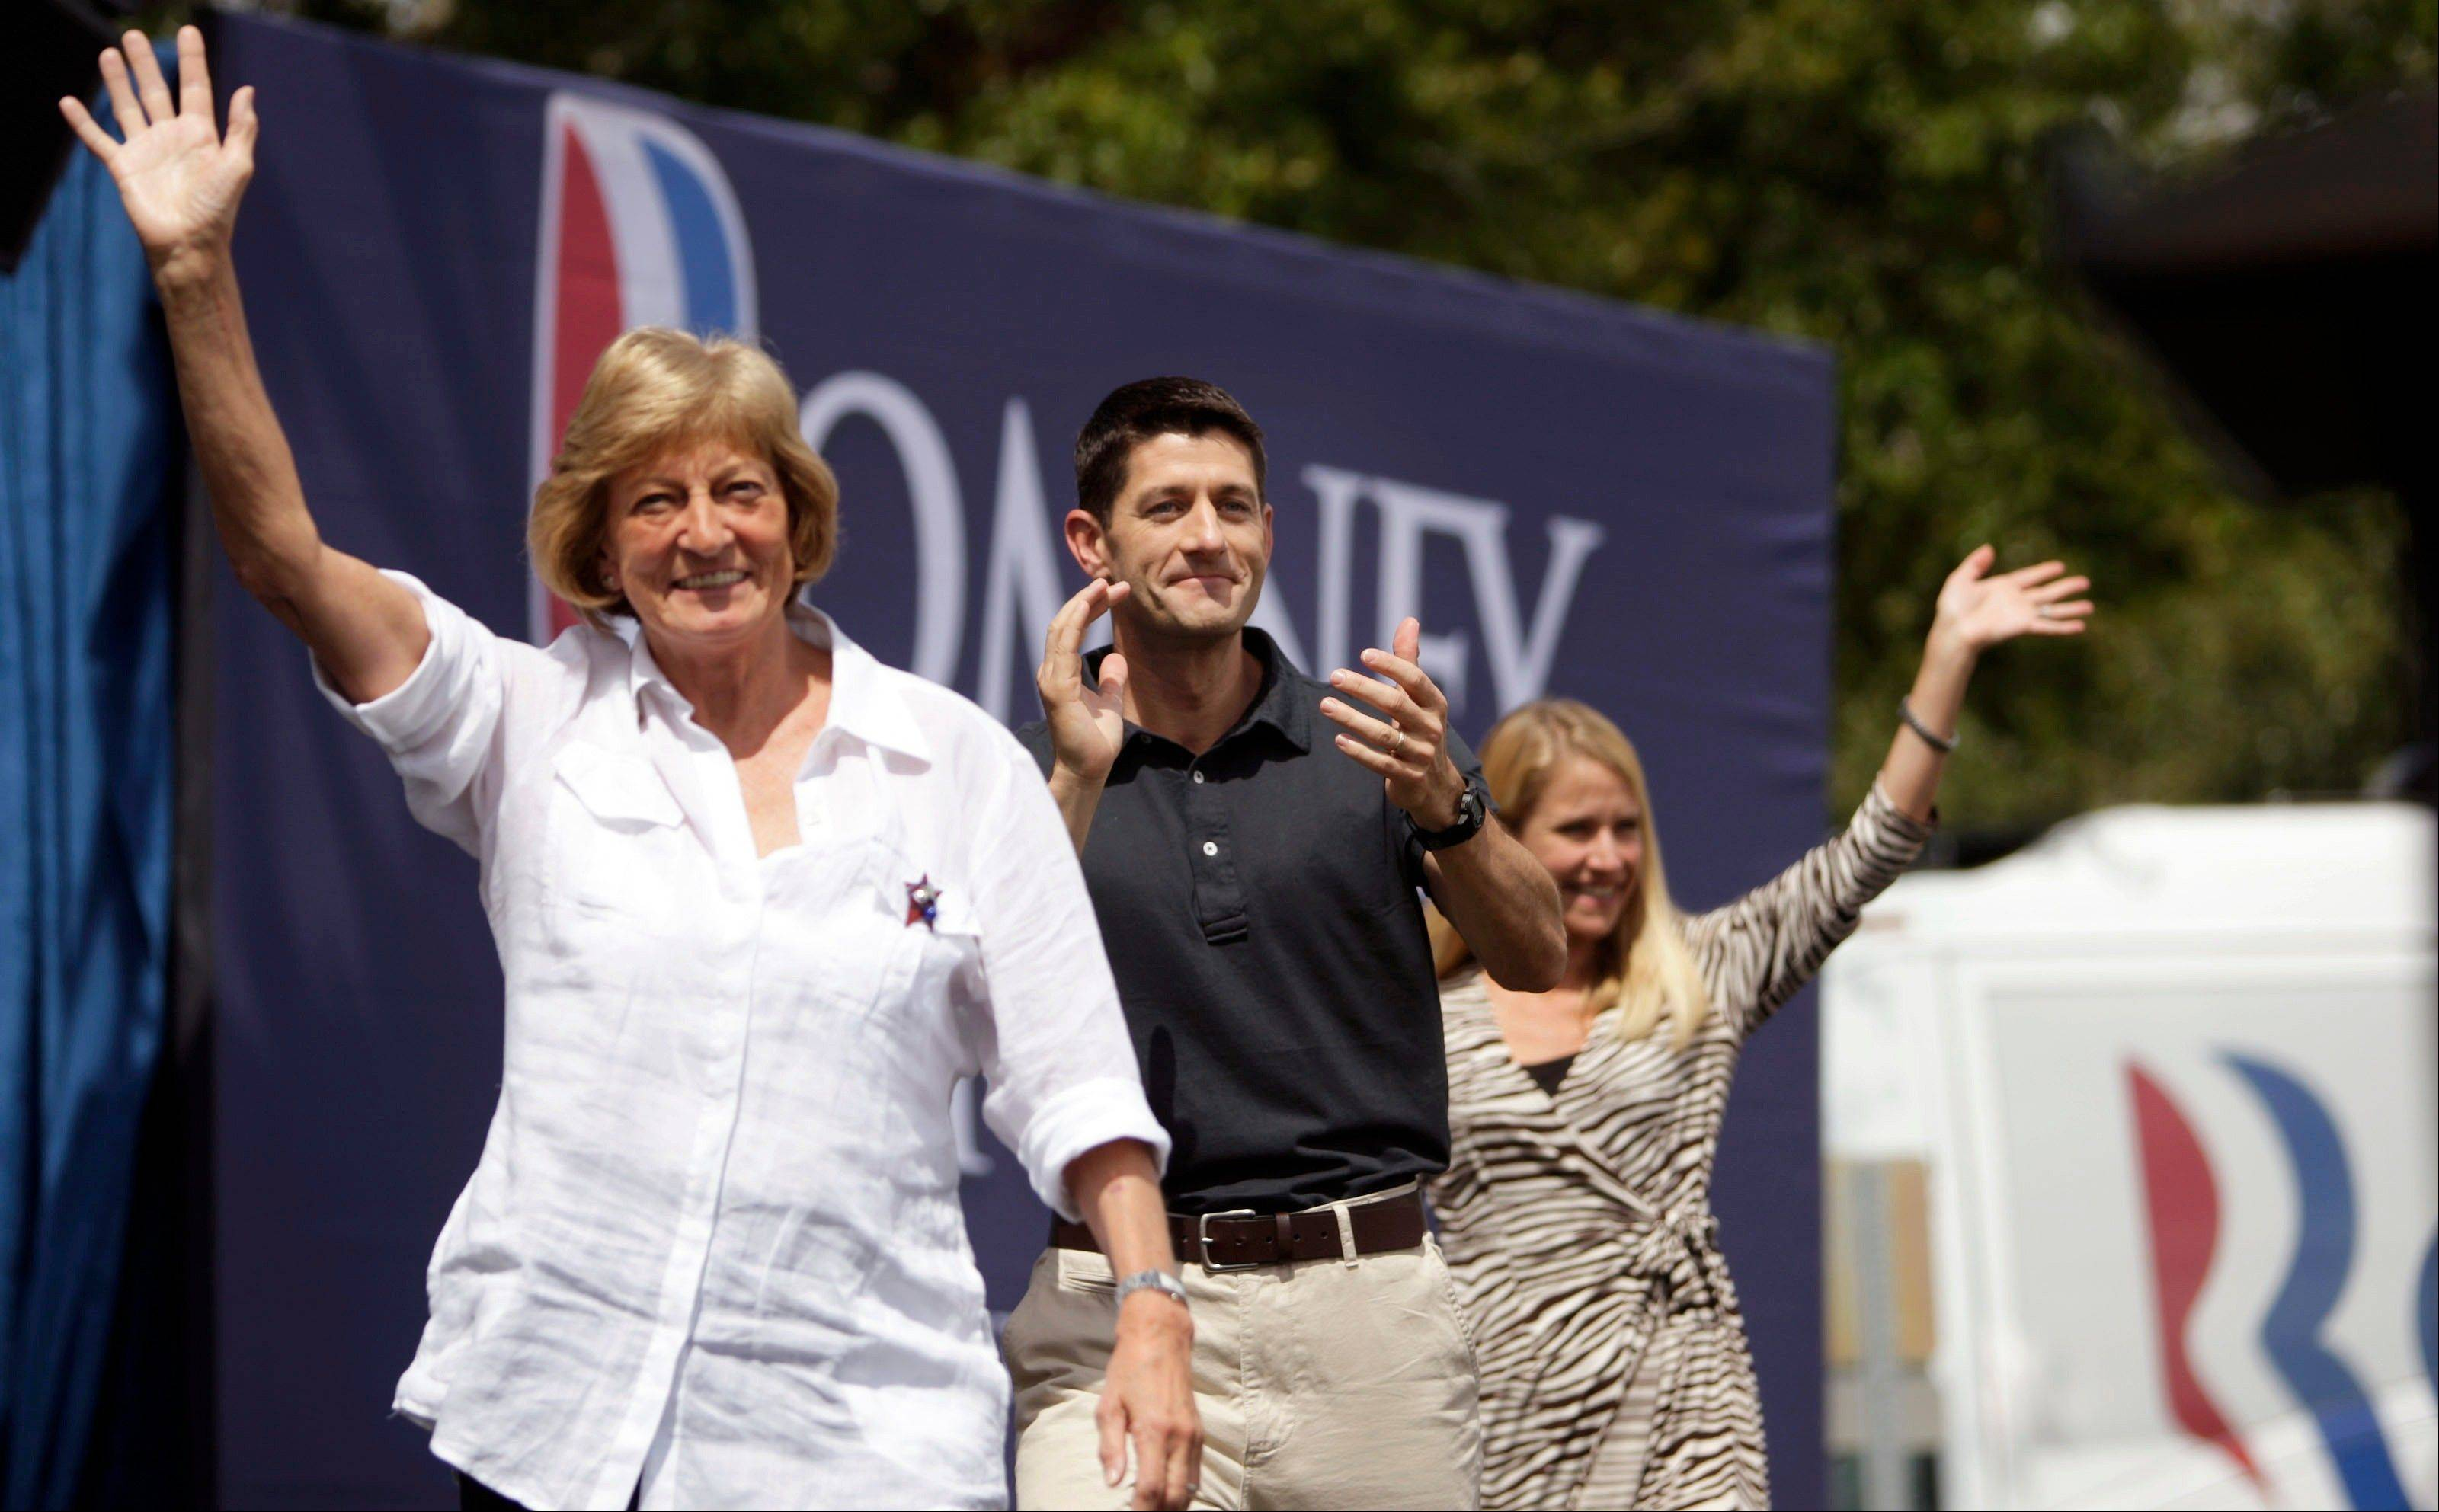 Flanked by his mother, Betty Douglas, left, and wife, Janna, right, U.S. Congressman Paul Ryan, the Republican nominee for vice president, takes the stage Saturday to speak to the crowd during a campaign stop in Oldsmar, Fla.